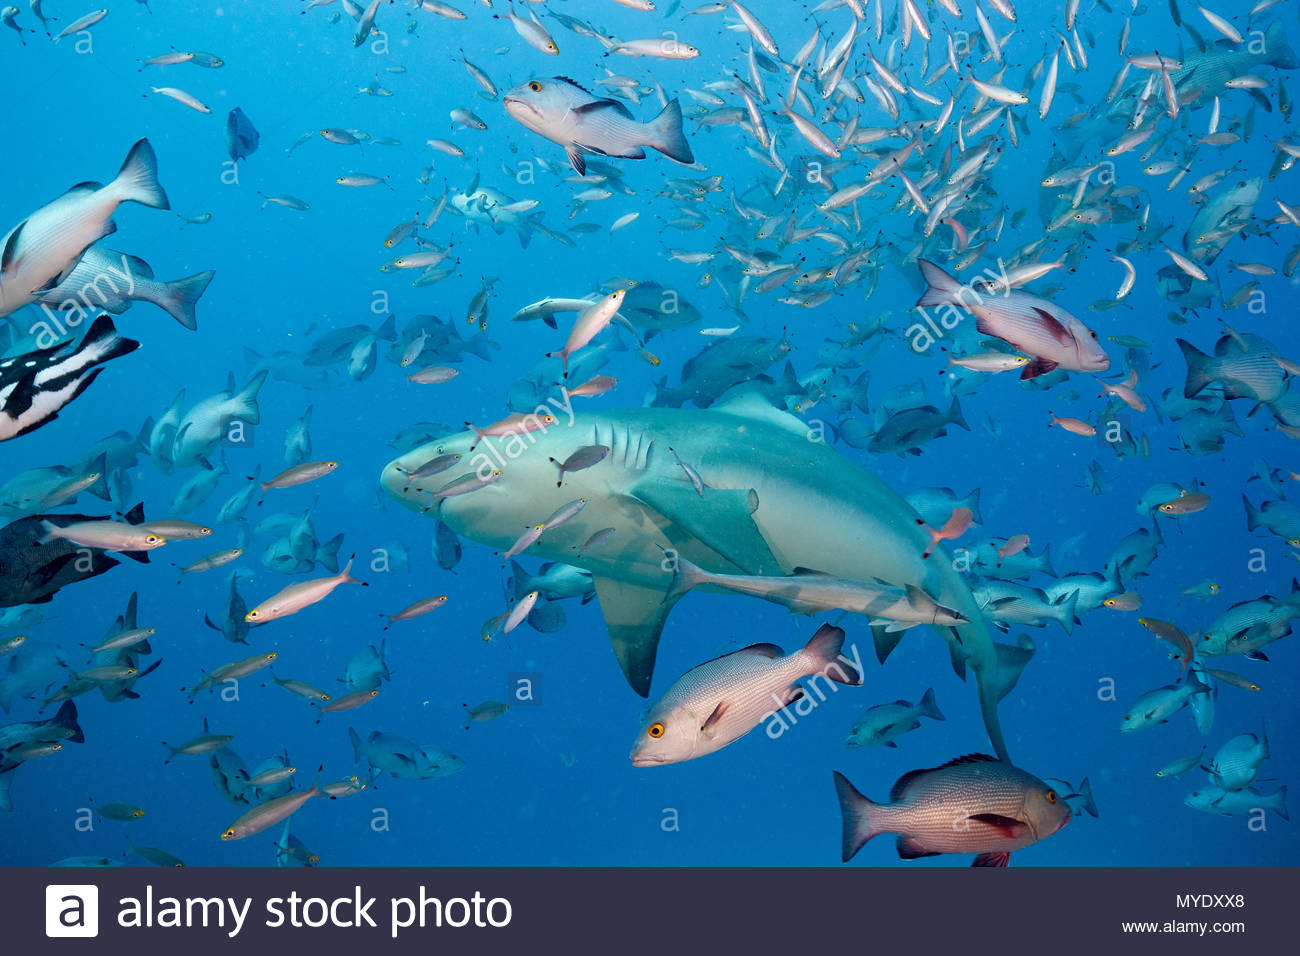 A bull shark, Carcharinus leucas, swims through a school of red snapper and fusiliers. - Stock Image